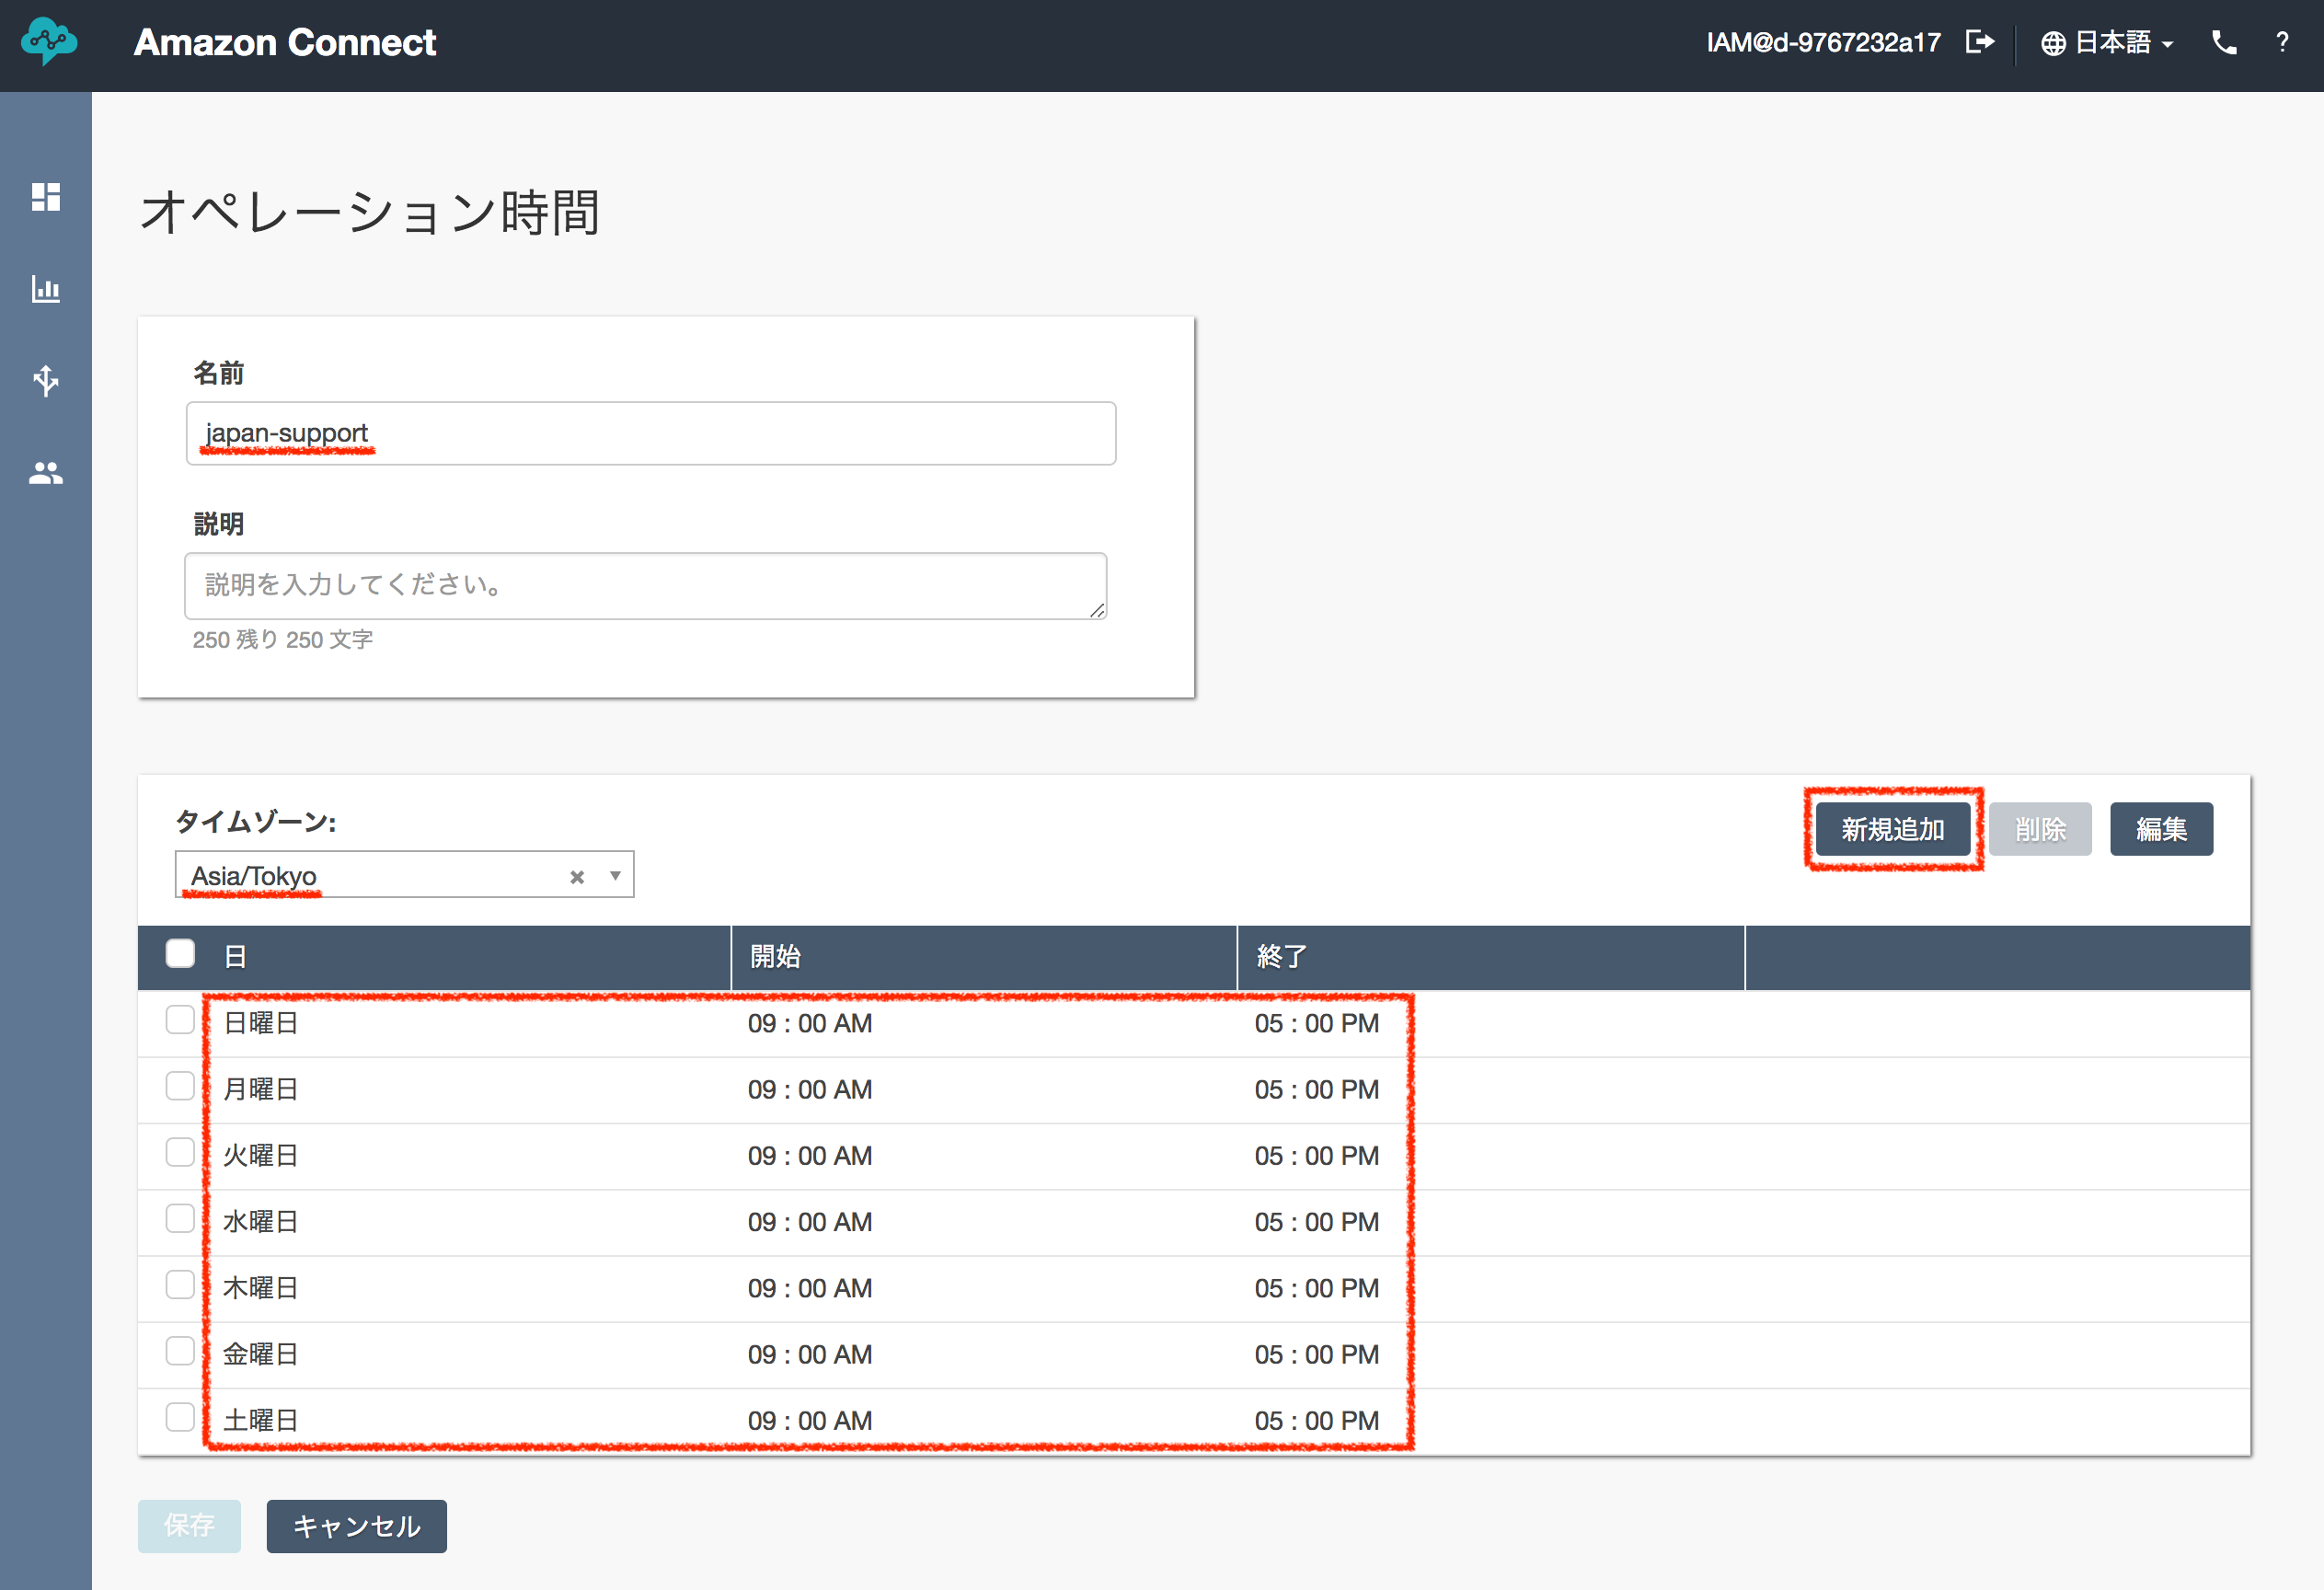 screencapture-kooooohei-awsapps-connect-operating-hours-manage-1517224465908.png